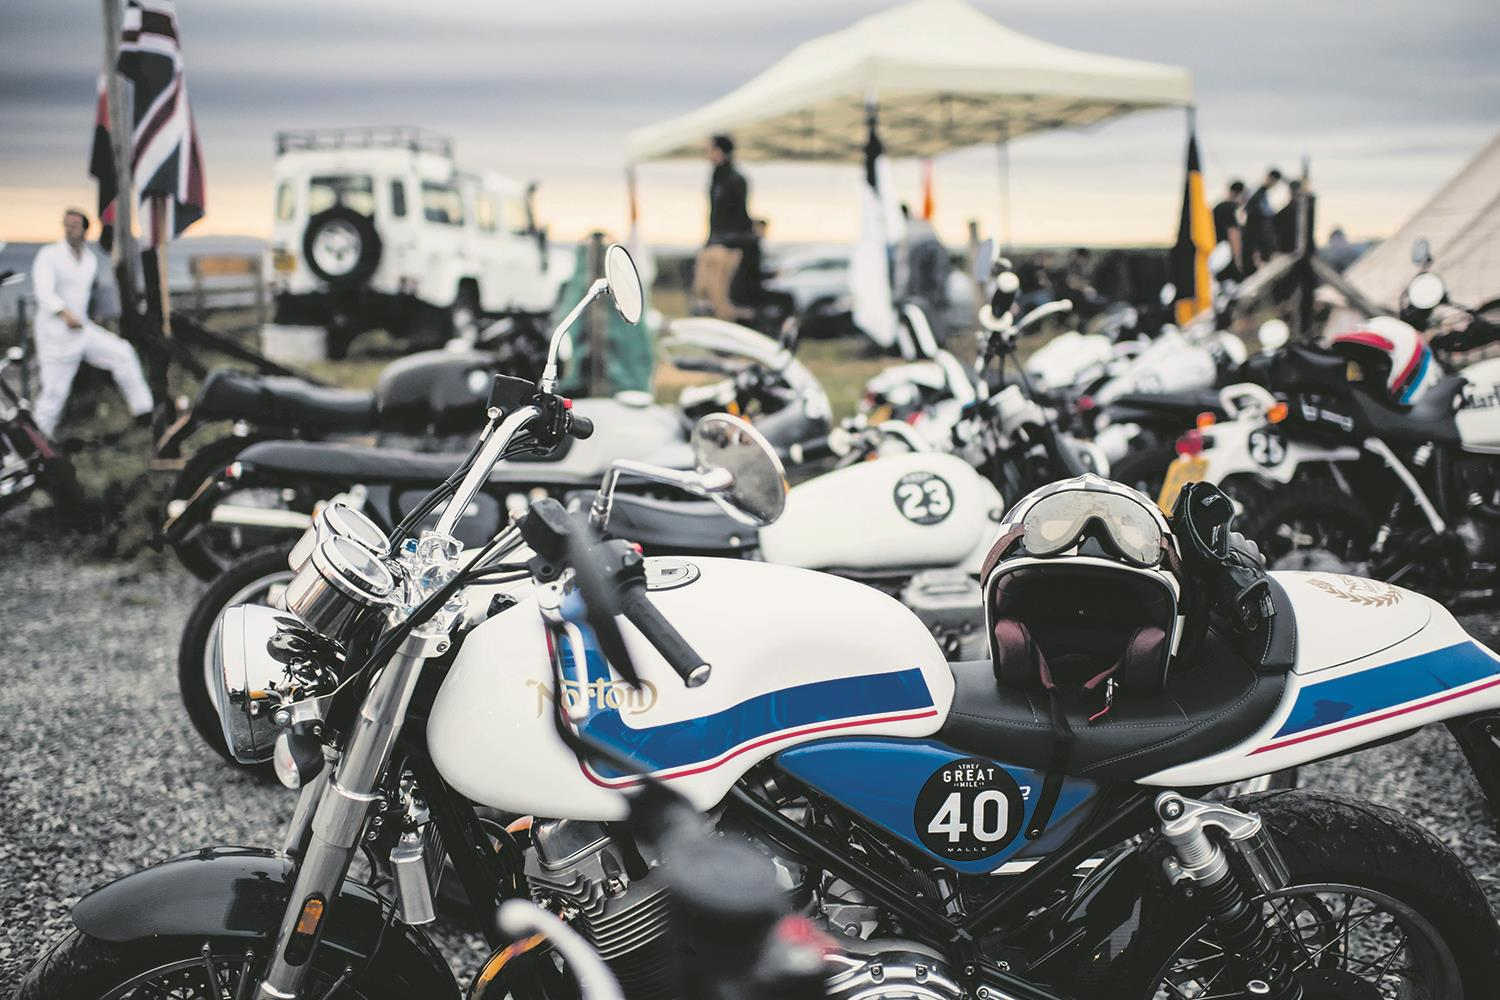 Motorbikes at the Great Malle Rally